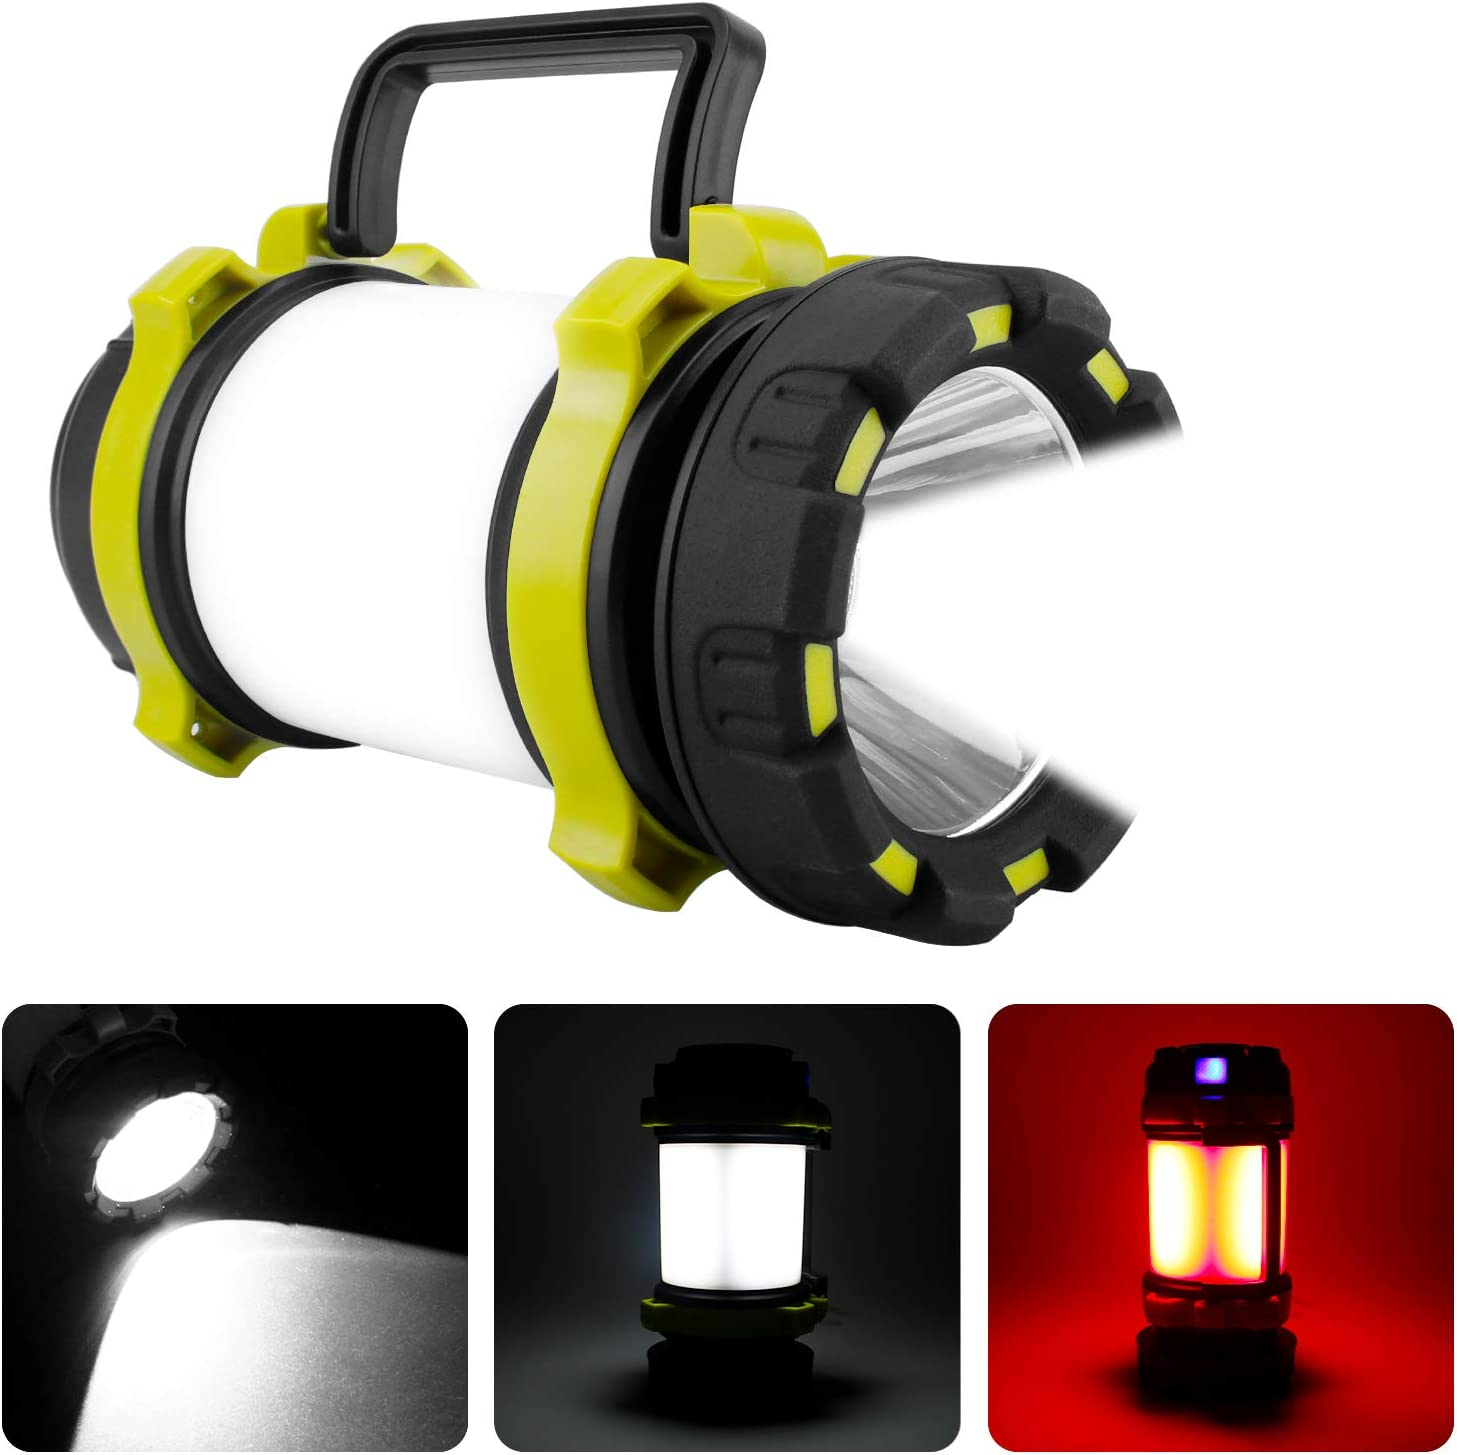 Arfbear LED Camping Torch Rechargeable Outdoor Powerful Flashlight Lantern Searchlight Waterproof Power Bank 4 Modes 800 Lumens Camping Lantern